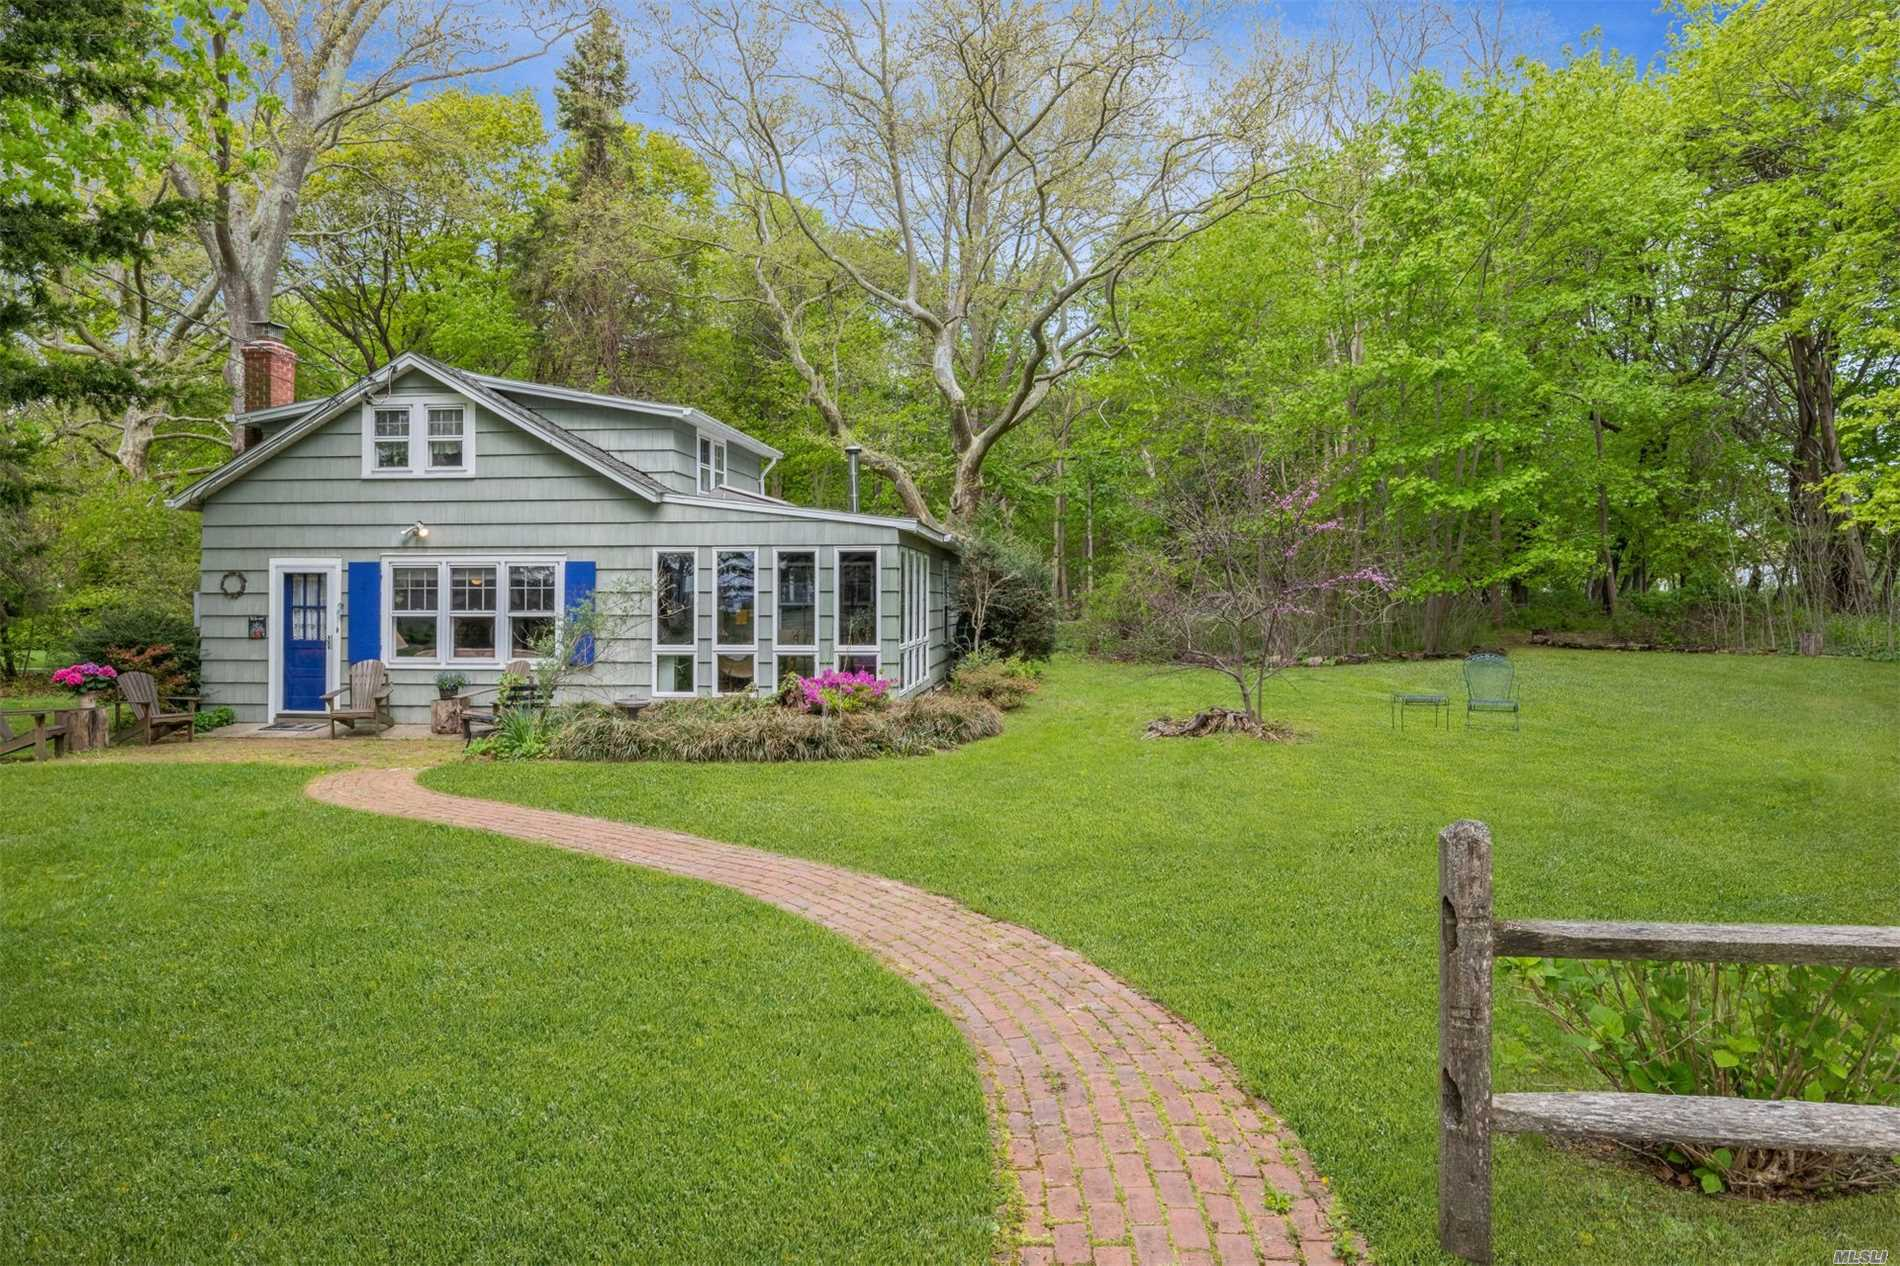 North Fork charming cottage across from the Peconic Bay. Open concept floor plan with lovely waterviews of Peconic Bay. Lovingly maintained, this 3 BR home has many new upgrades including Central Air and irrigation. The Private Deeded beach is merely a stone's throw away! Situated on private setting surrounded by The Bay, Farmland and woods. Just bring your Kayak! See Virutal Tour!!